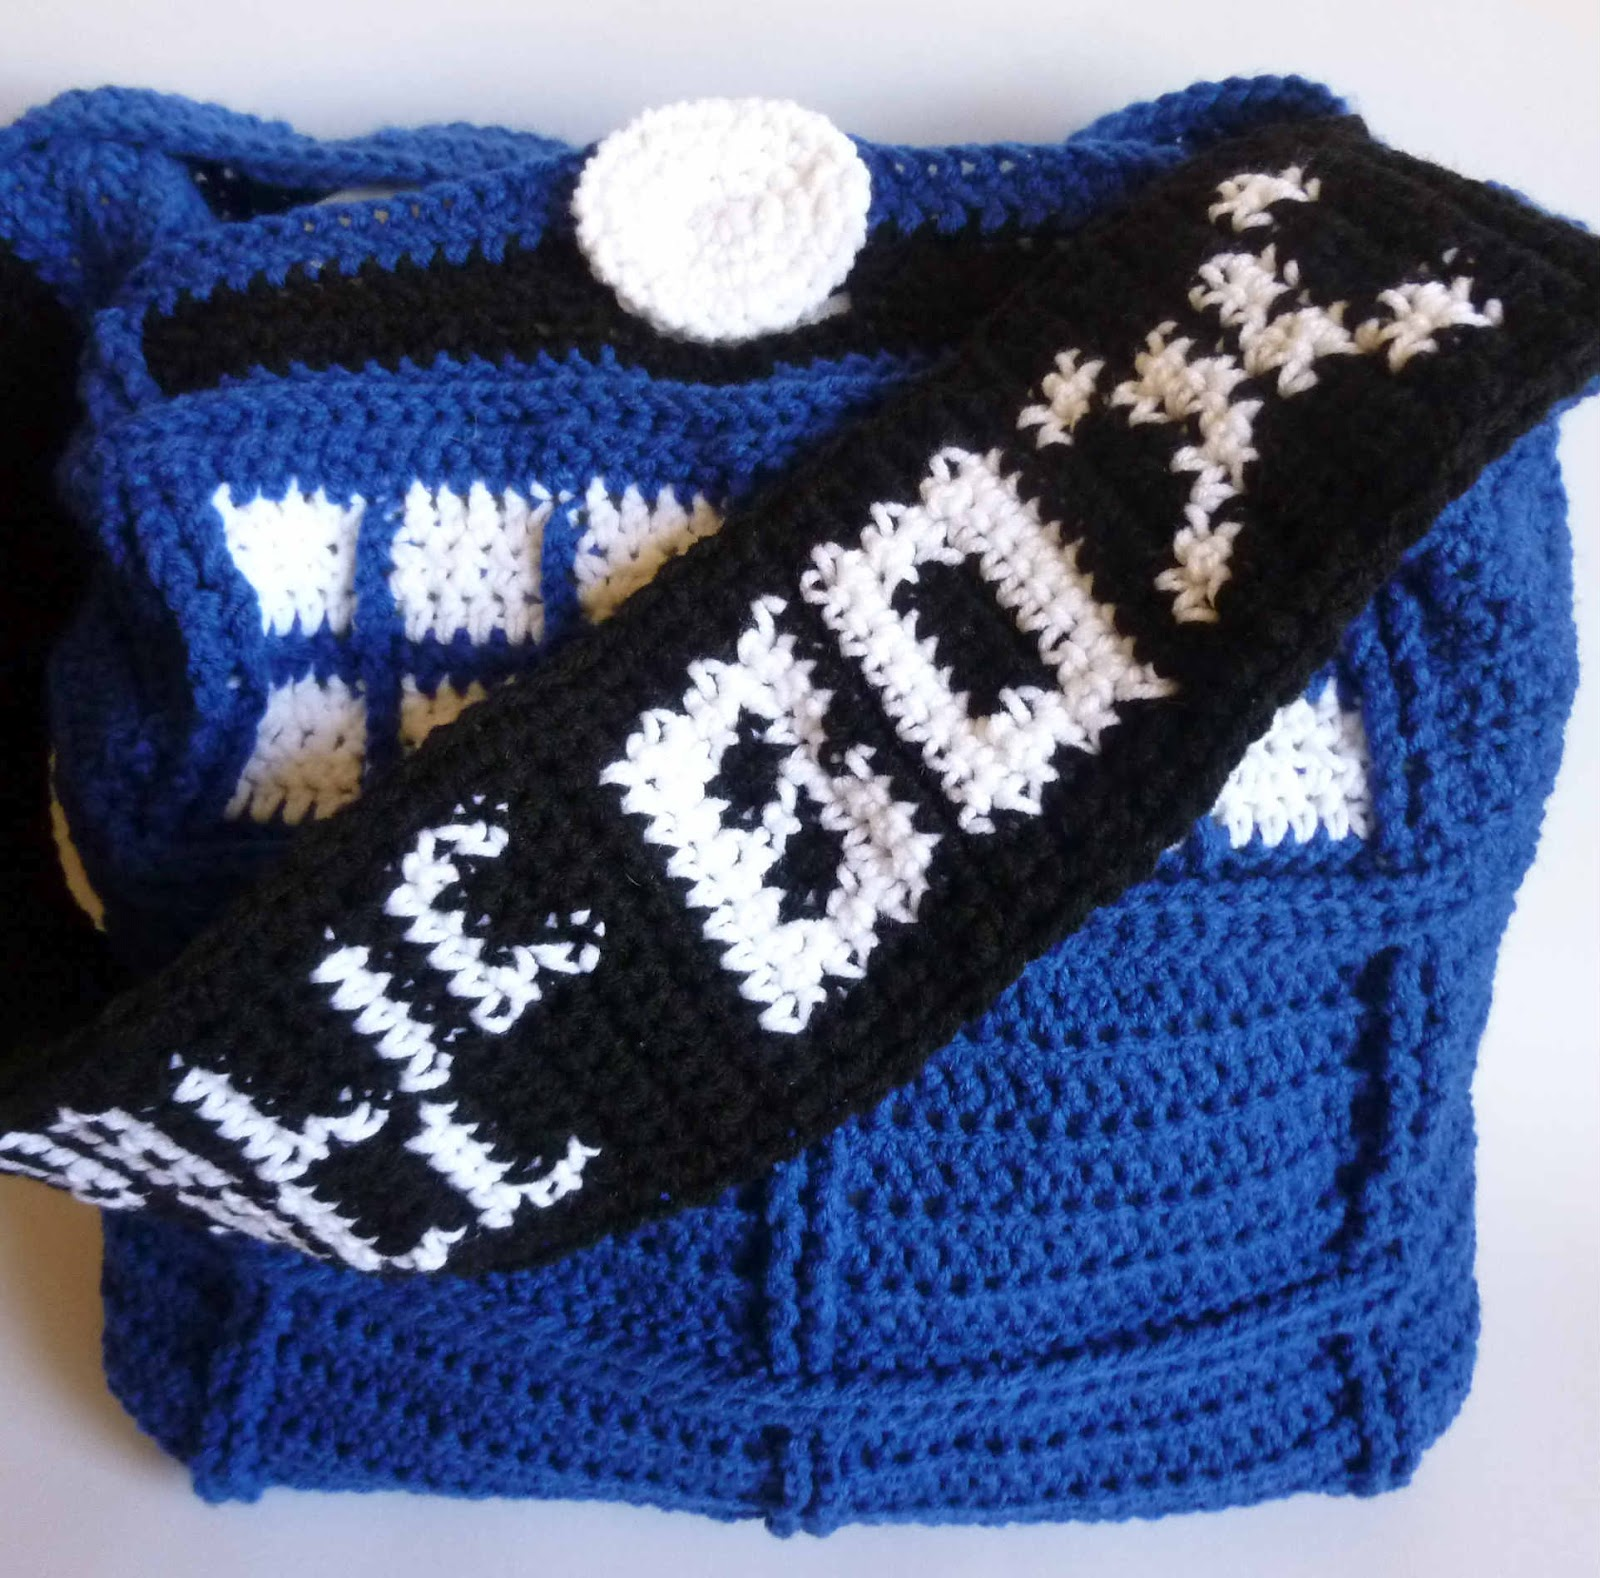 Tardis Bag Knitting Pattern : Crochet Dynamite: The Tardis Bag - A love story in 3 parts